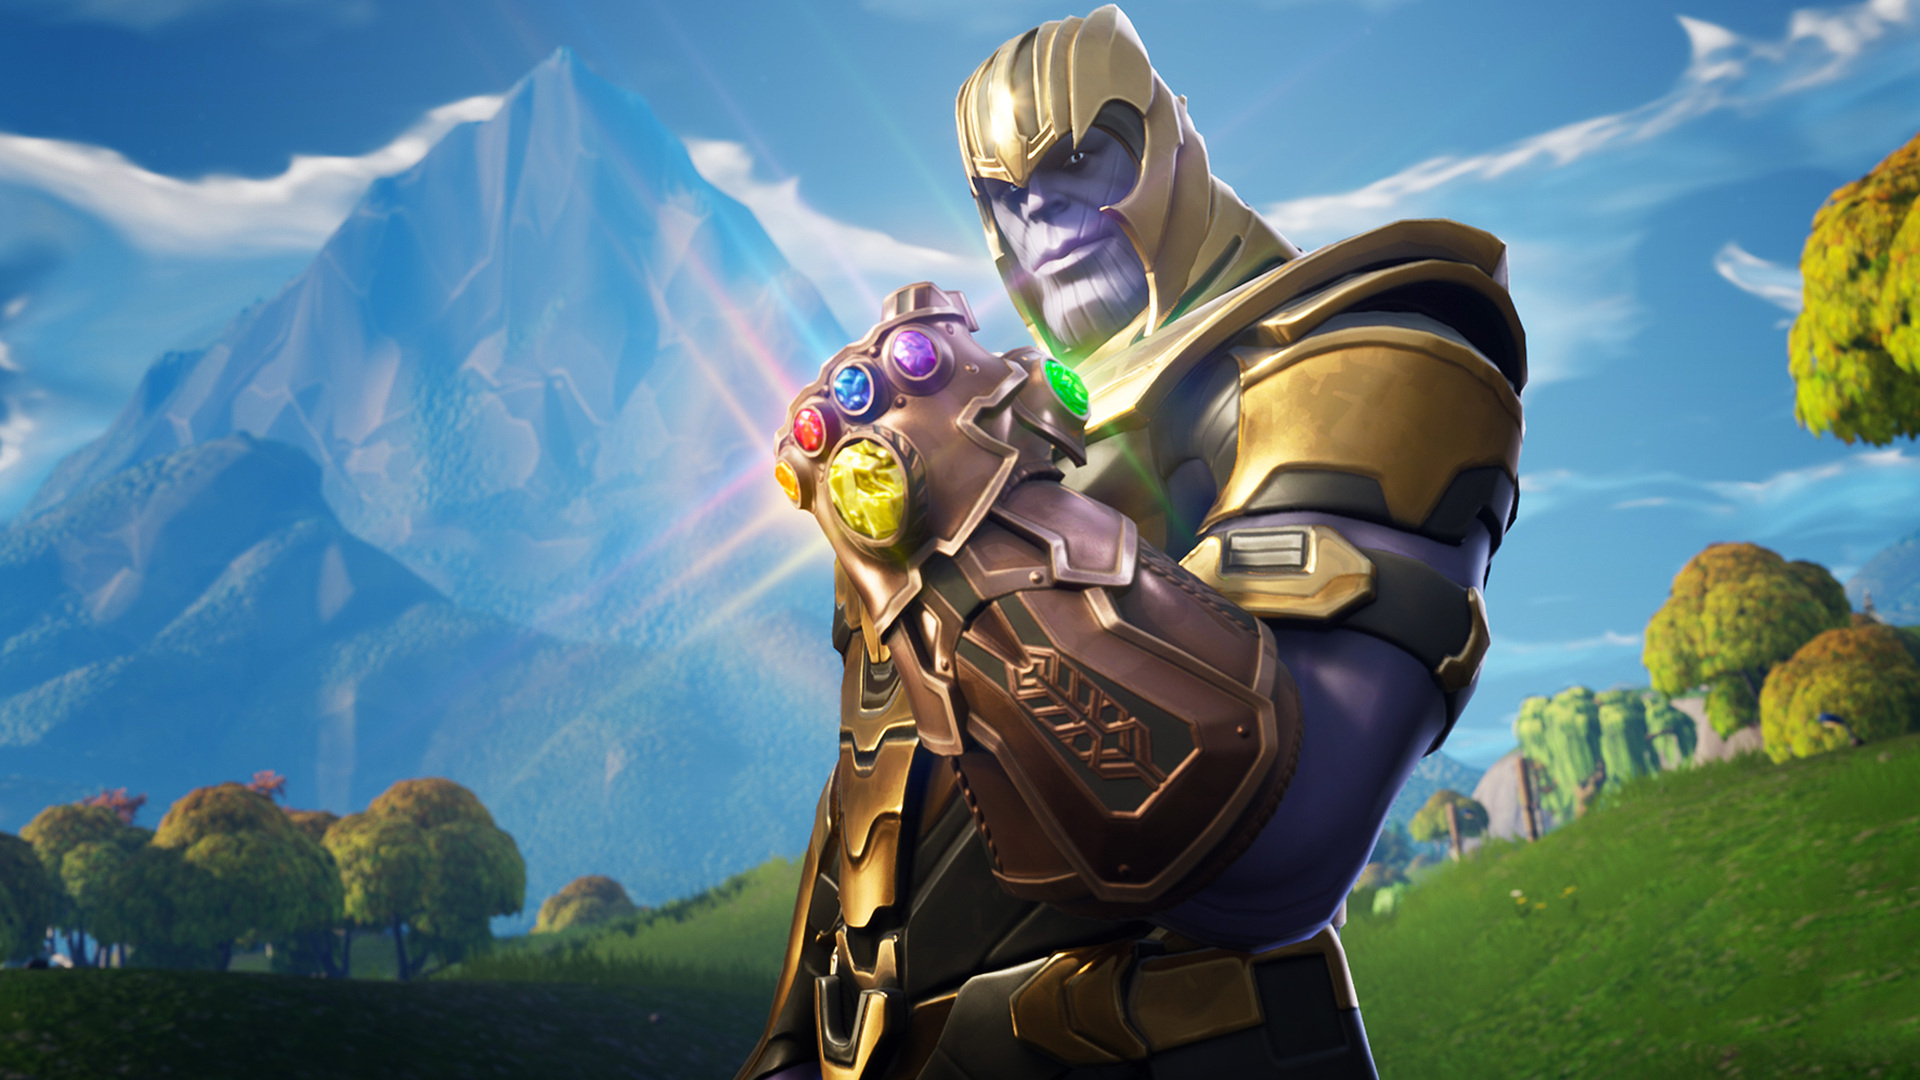 1920x1080 Thanos In Fortnite Battle Royale Laptop Full Hd 1080p Hd